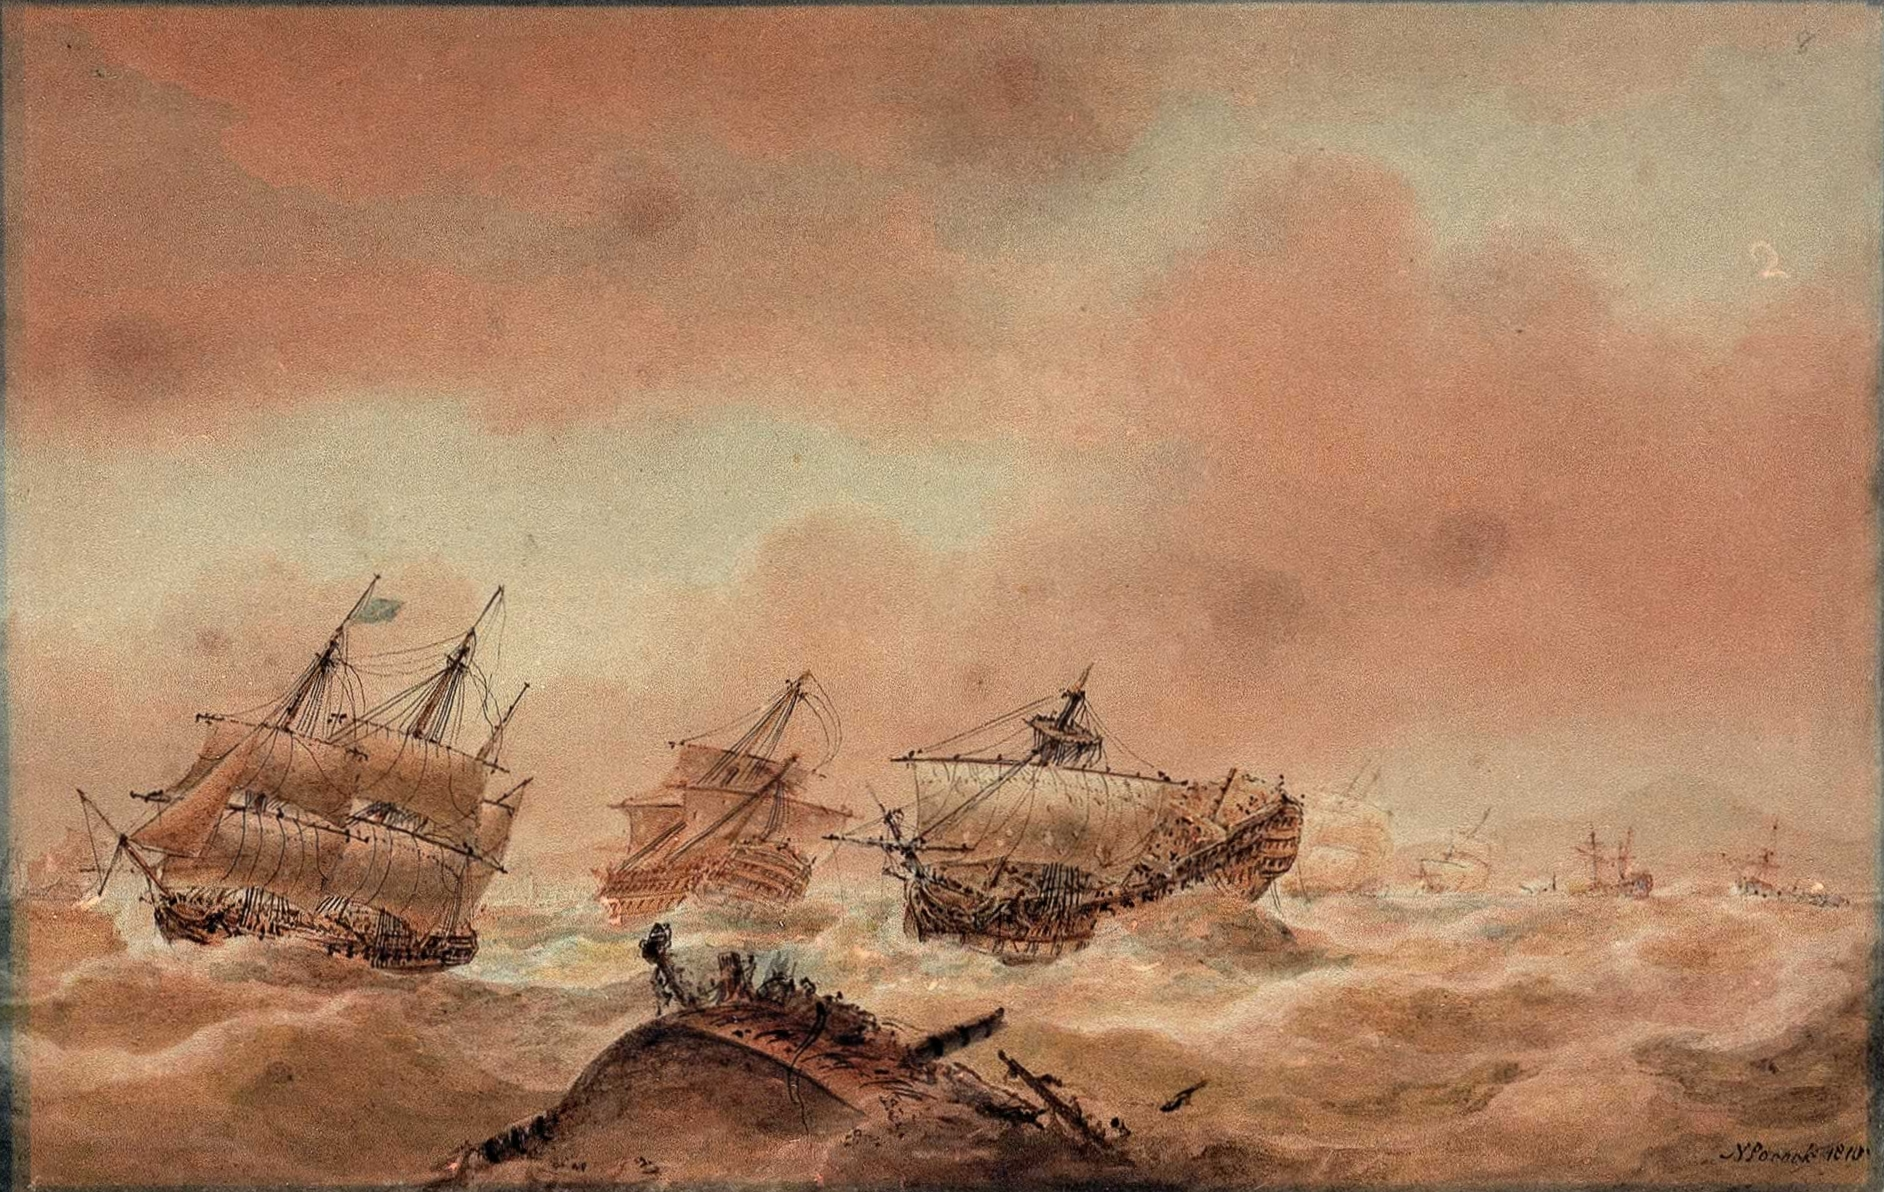 Nicholas_Pocock,_The_Day_after_Trafalgar